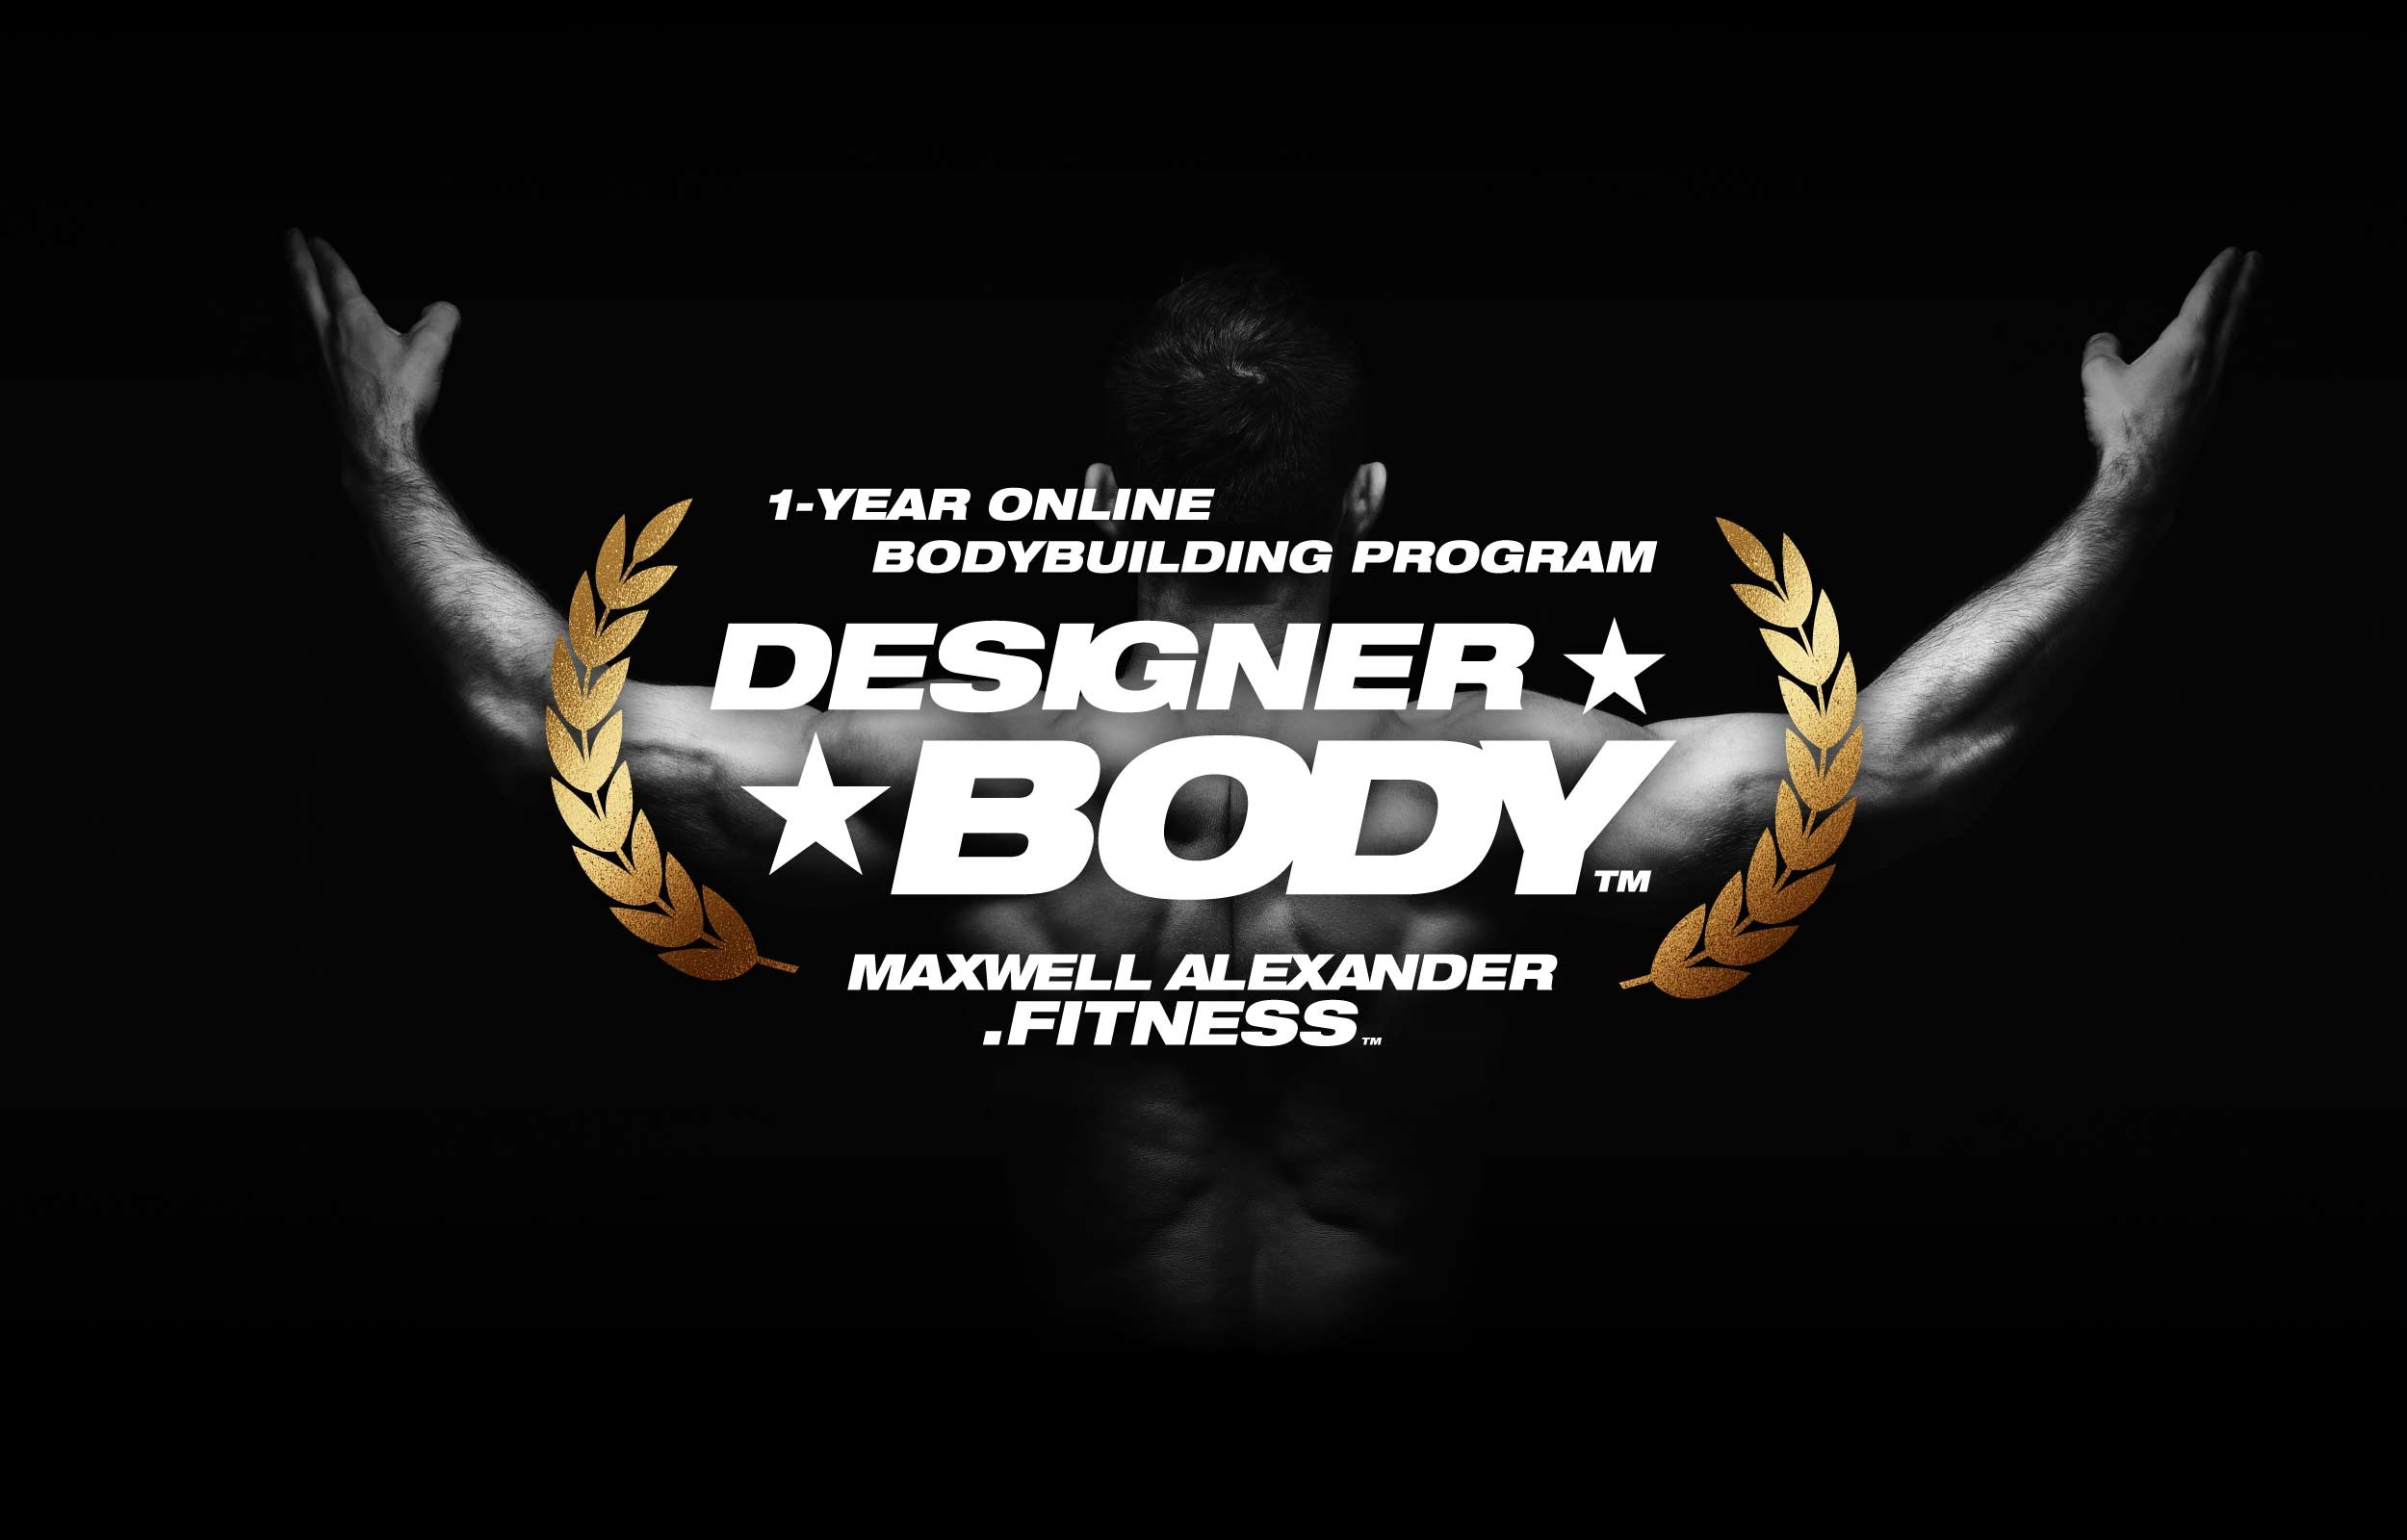 Designer Body - Online Bodybuilding Program by Maxwell Alexander